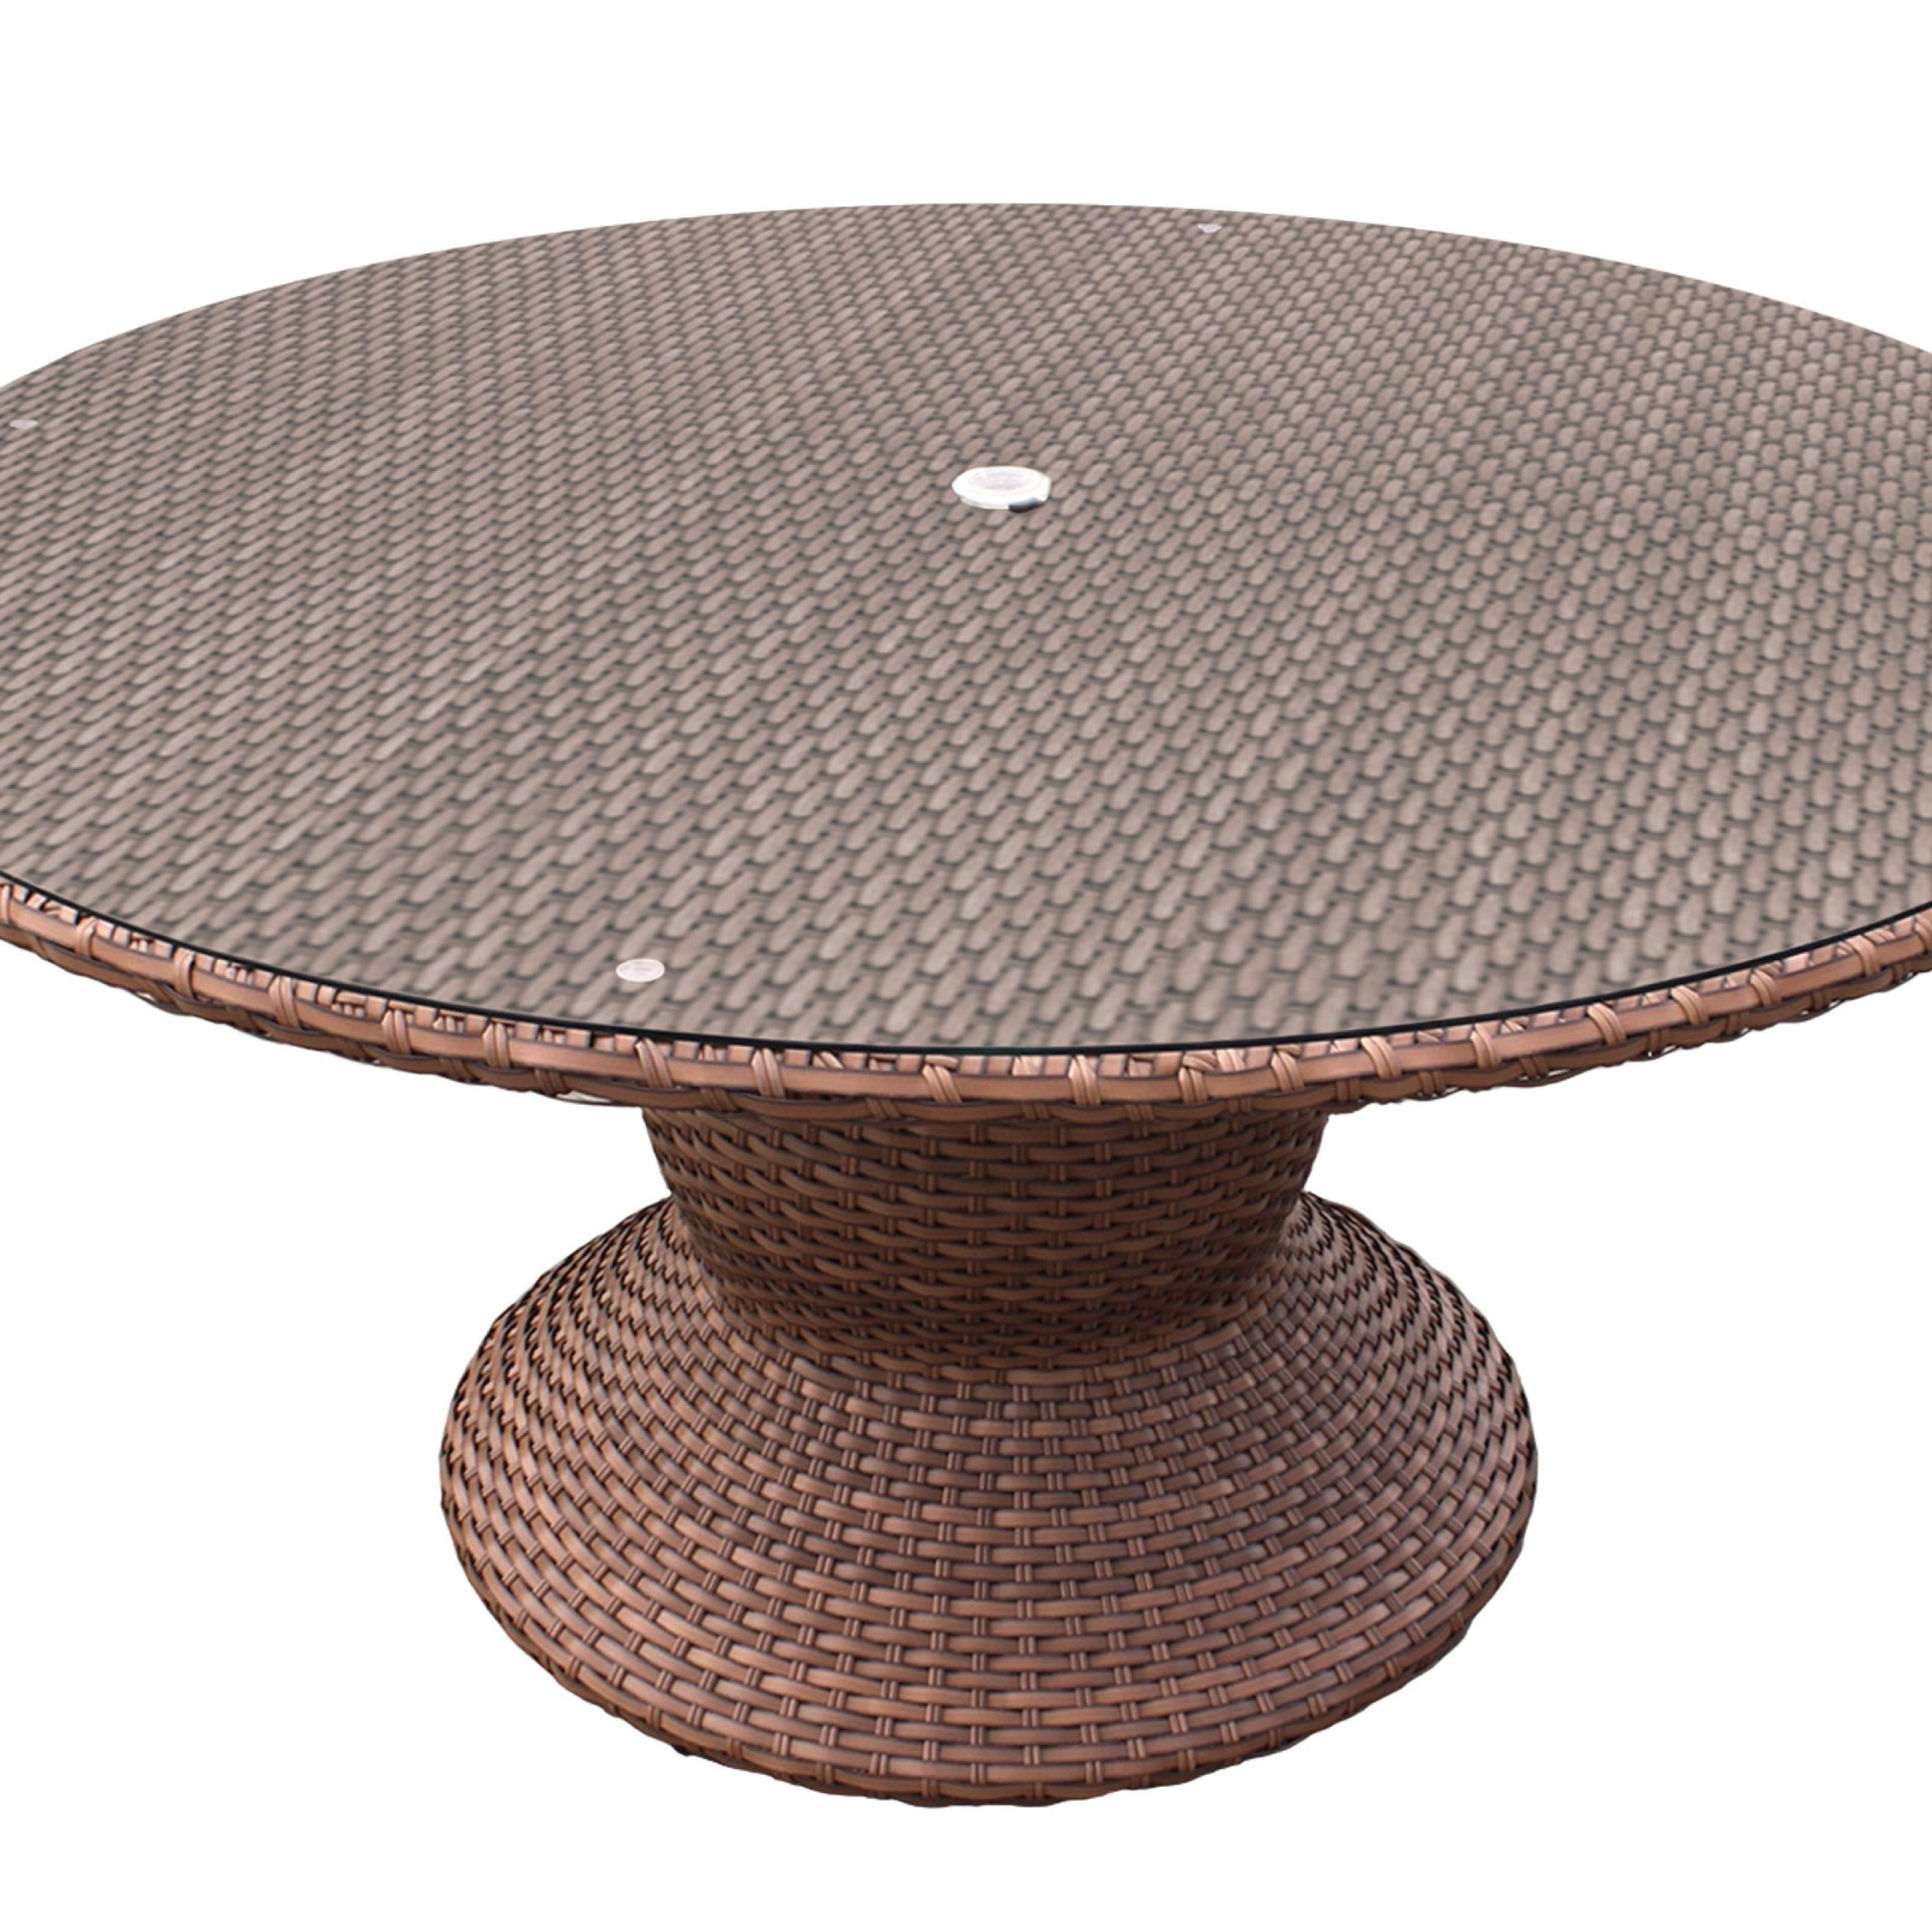 Seadrift Toscana Pedestal Extending Dining Tables Pertaining To Most Recent Laguna 60 Inch Outdoor Patio Dining Table (View 17 of 25)